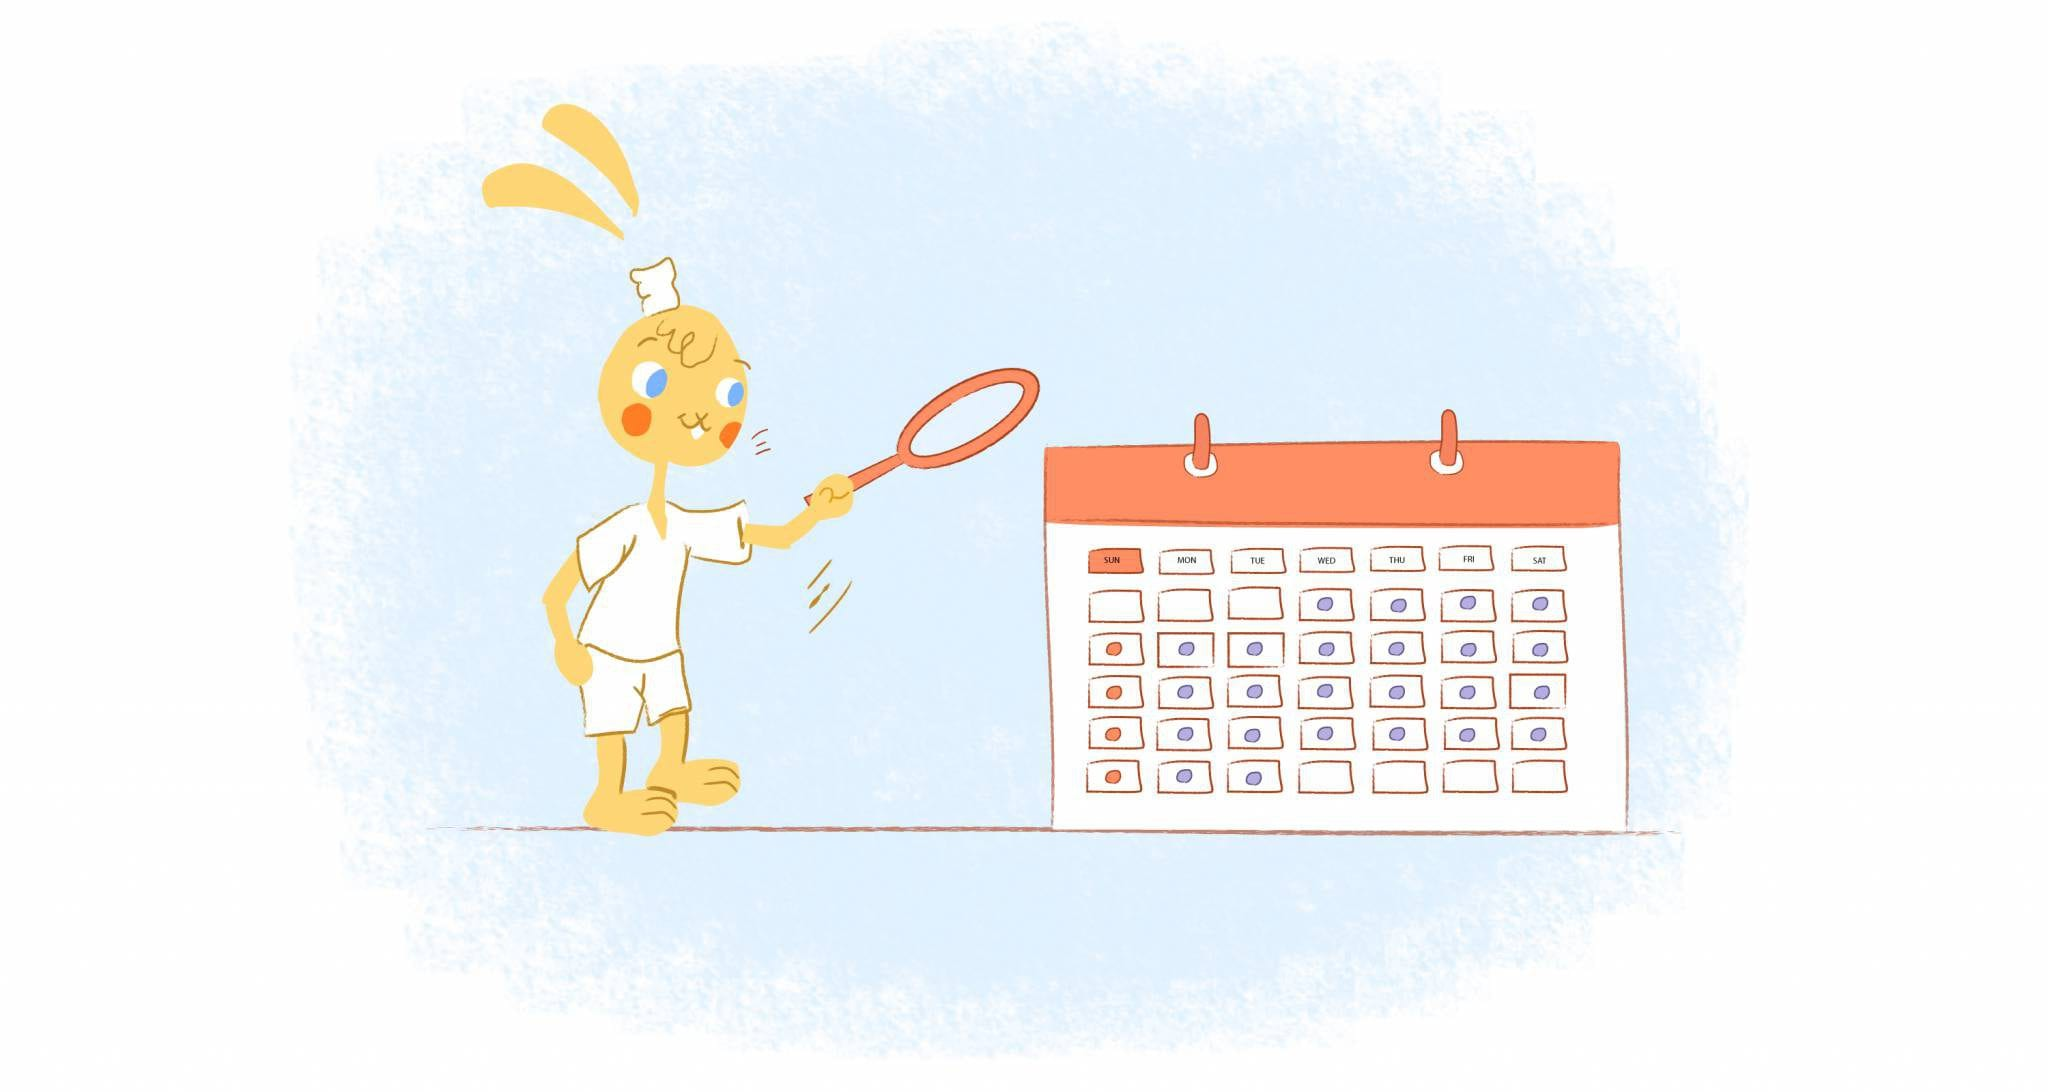 housekeeping chores on your calendar